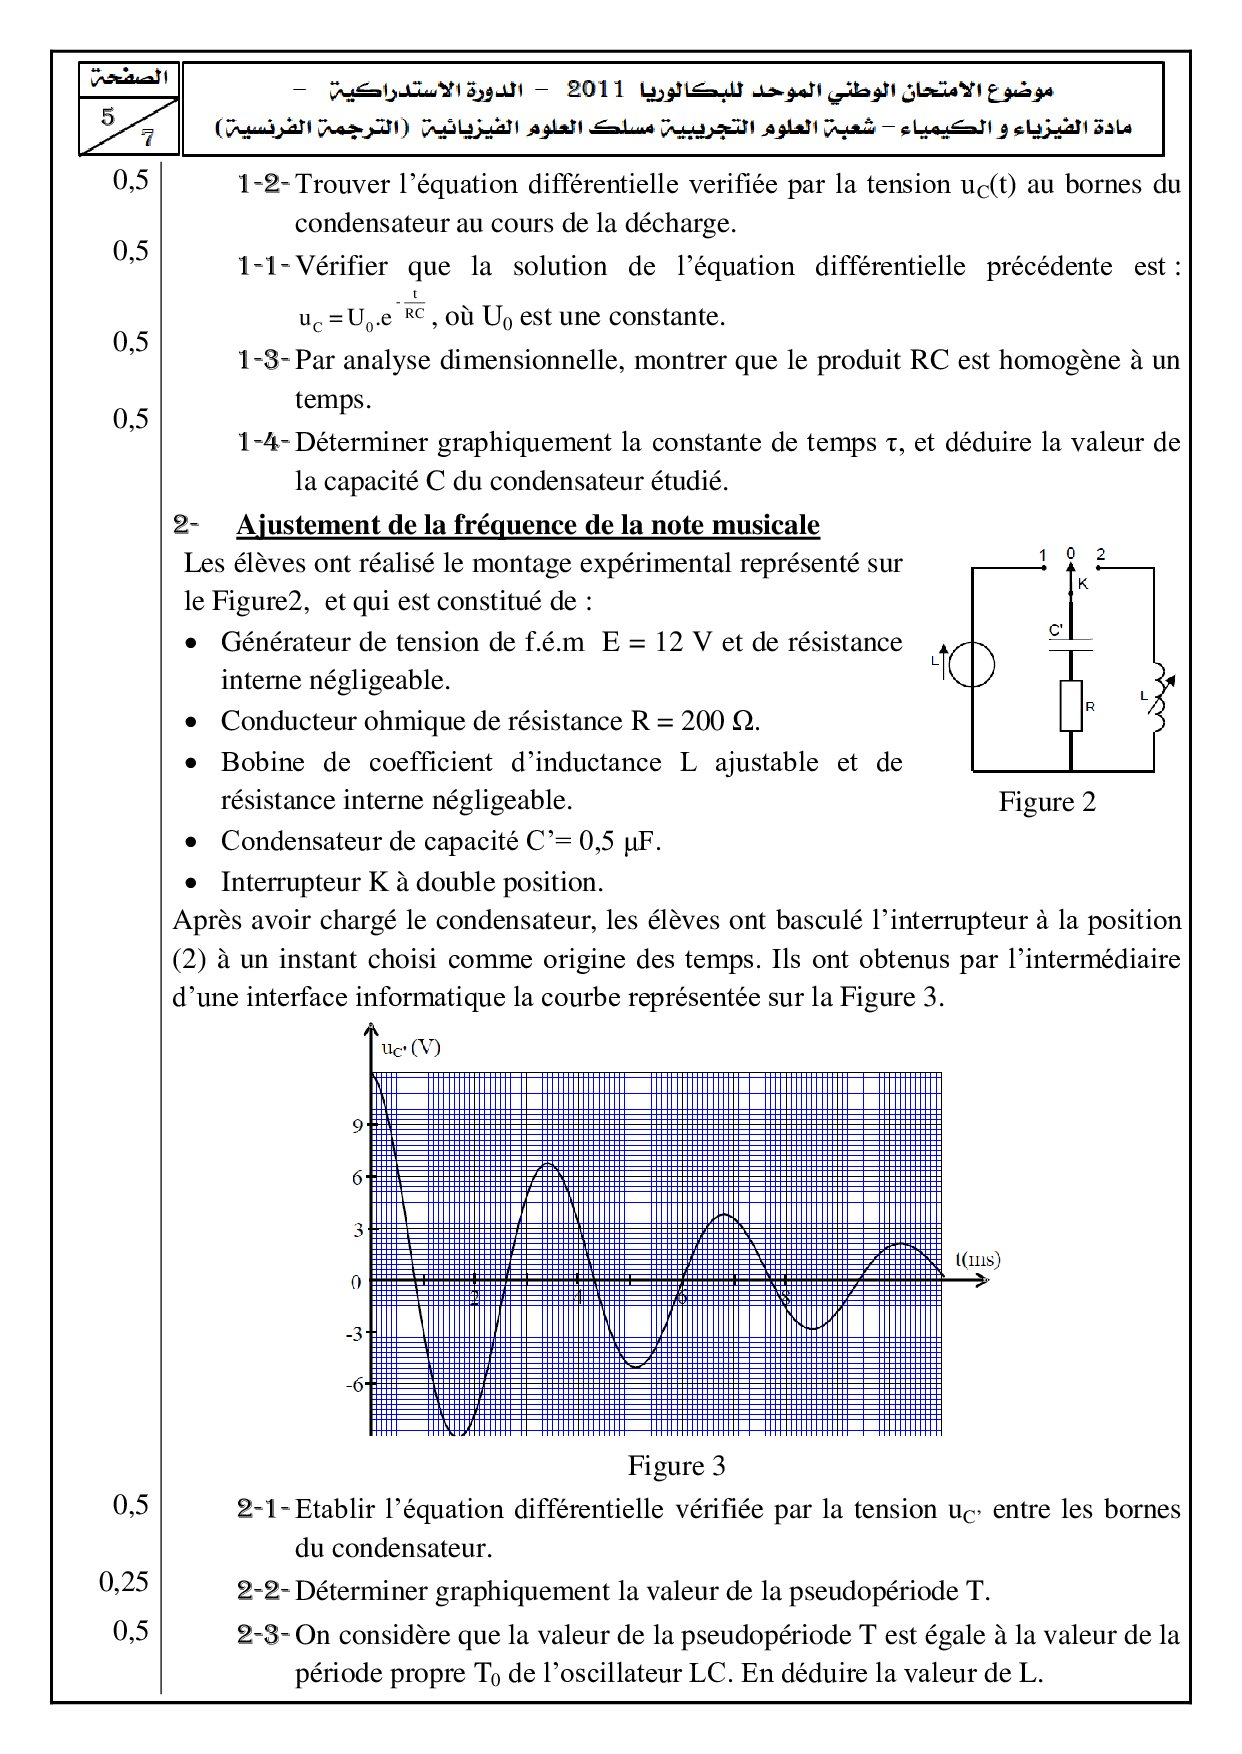 Examen National Physique-Chimie SPC 2011 Rattrapage - Sujet5.jpg